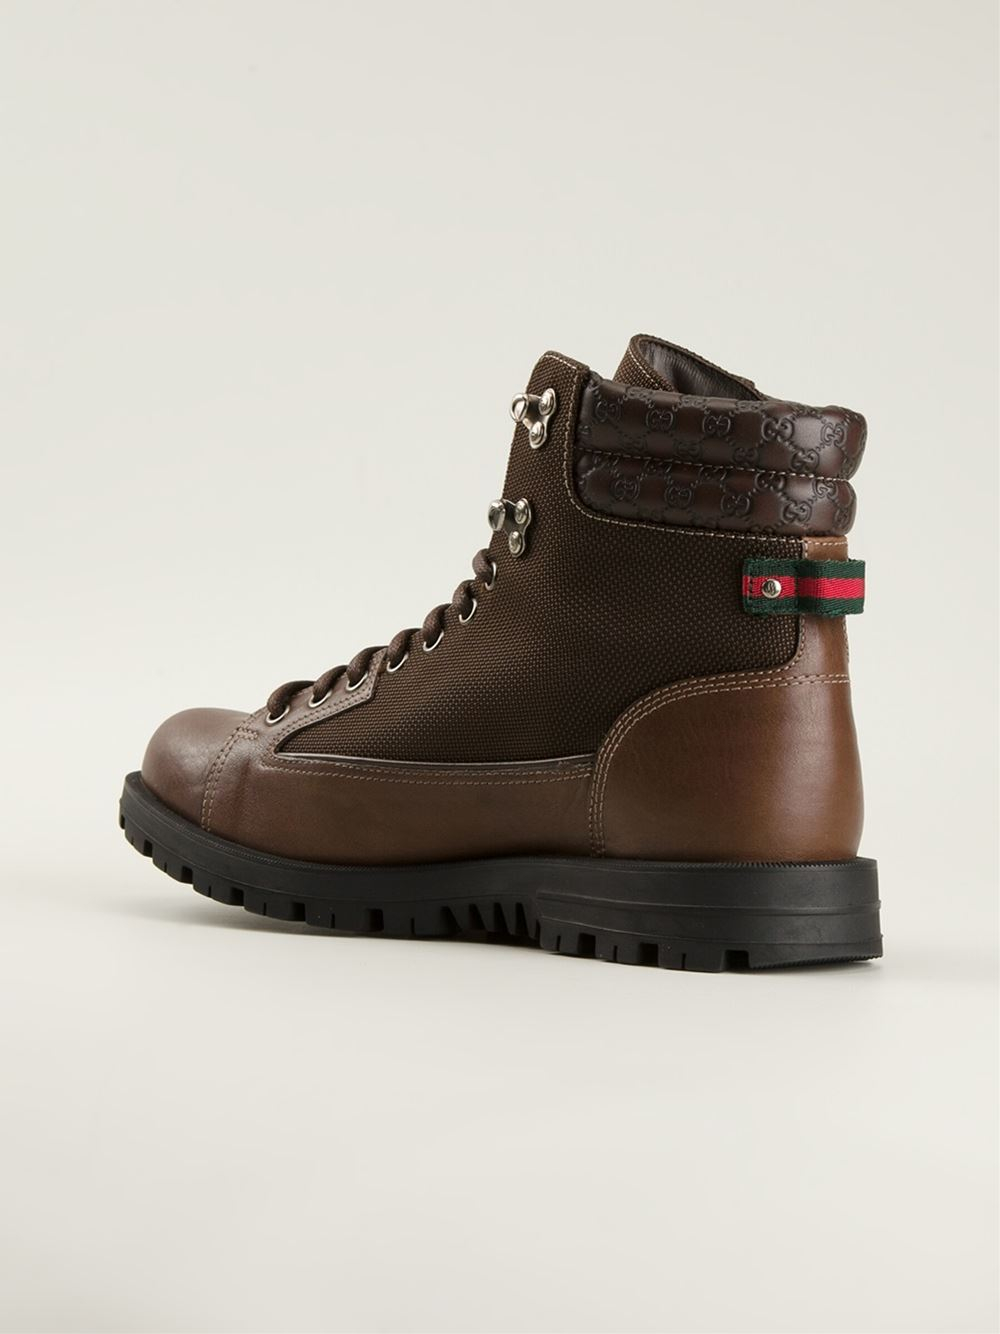 Lyst Gucci Military Style Boots In Brown For Men